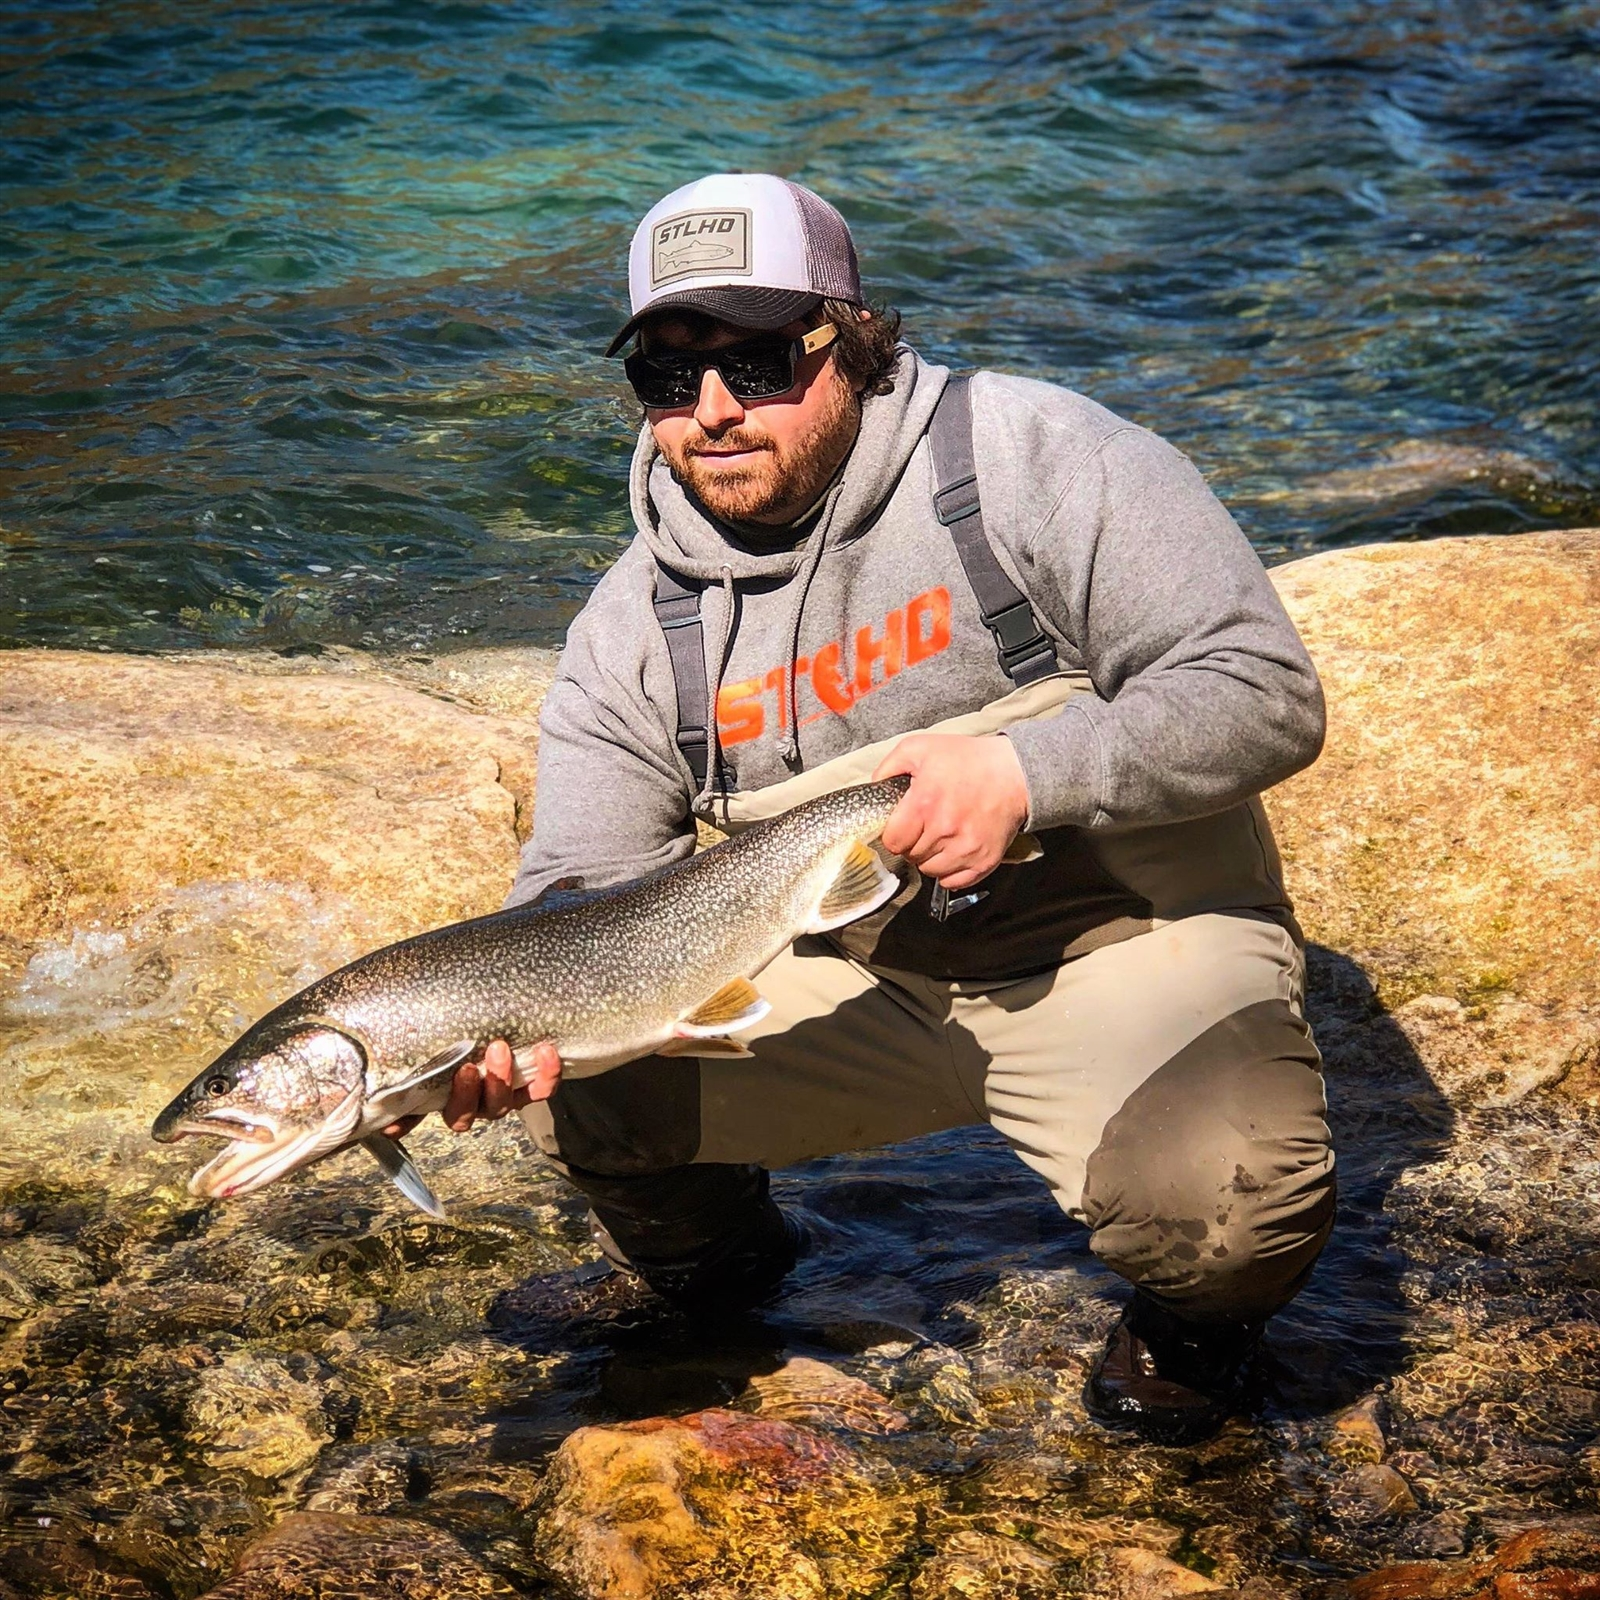 Capt. Nick Calandrelli of Lewiston caught this lower river lake trout on a jig over the weekend.